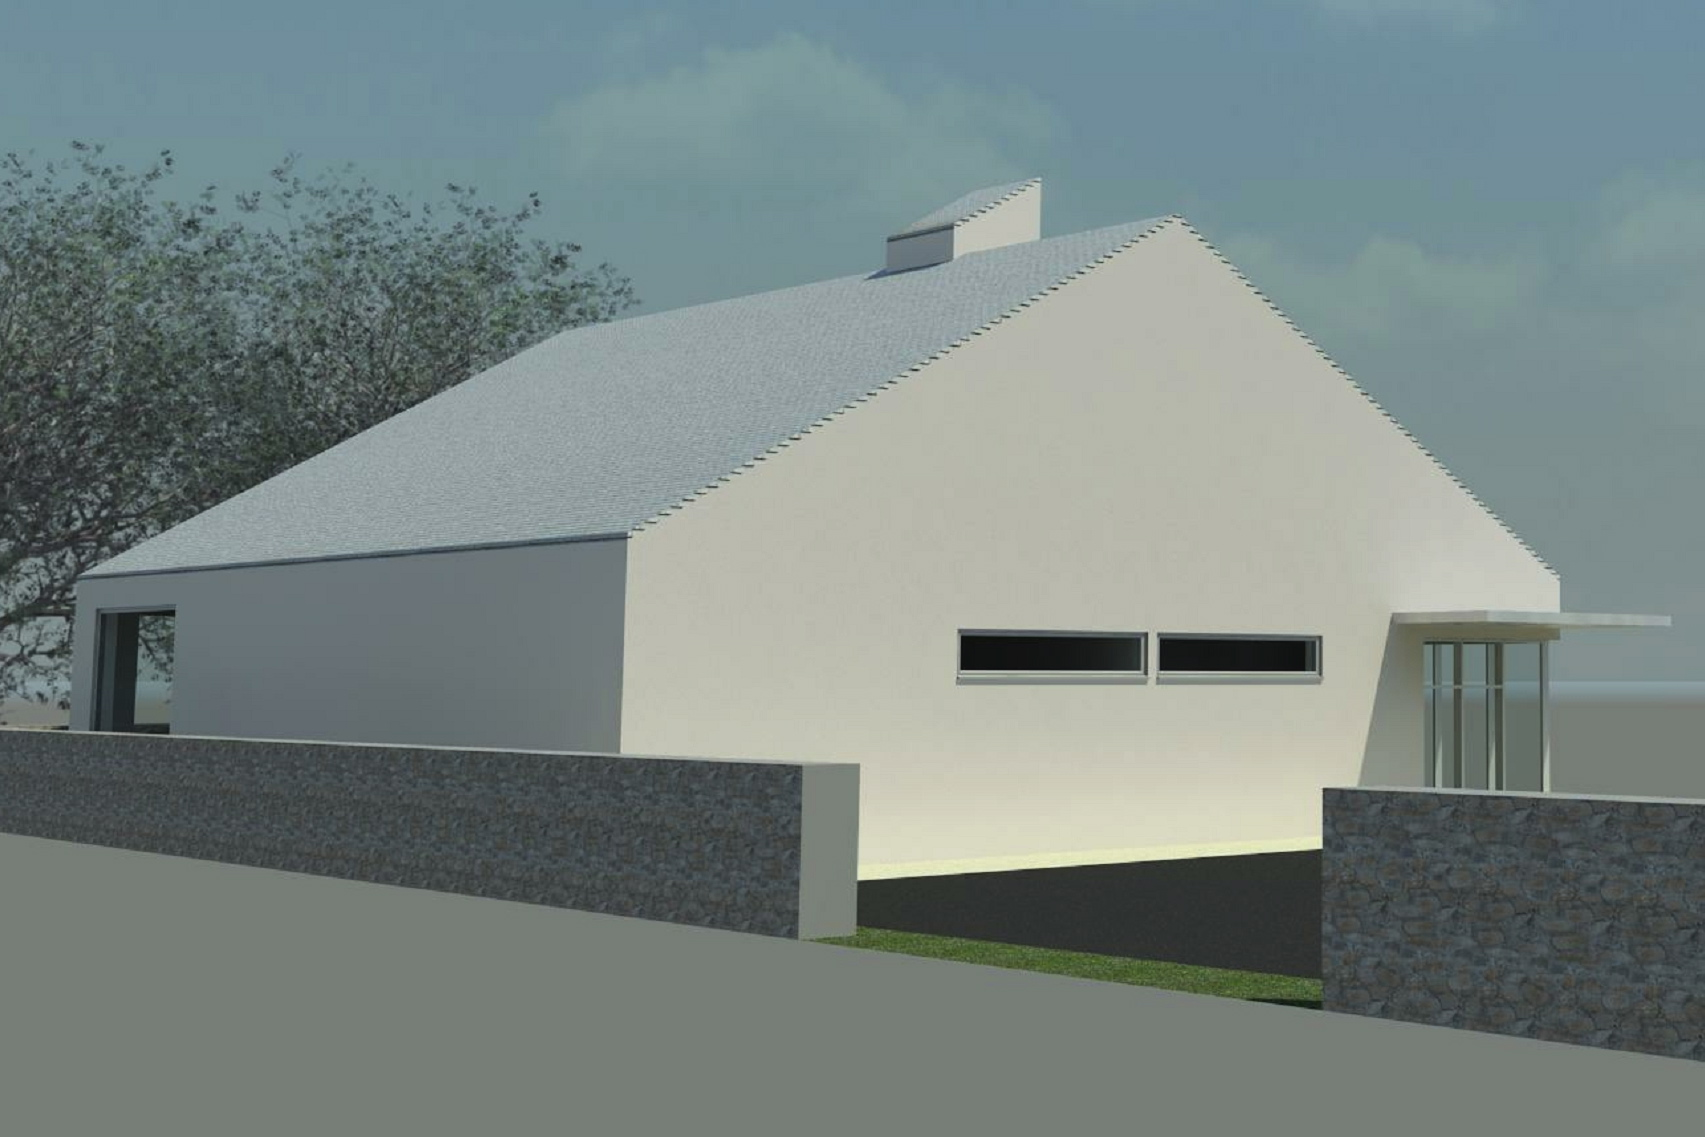 melling 3 small sq plan - Rendering - 3D View 2_8